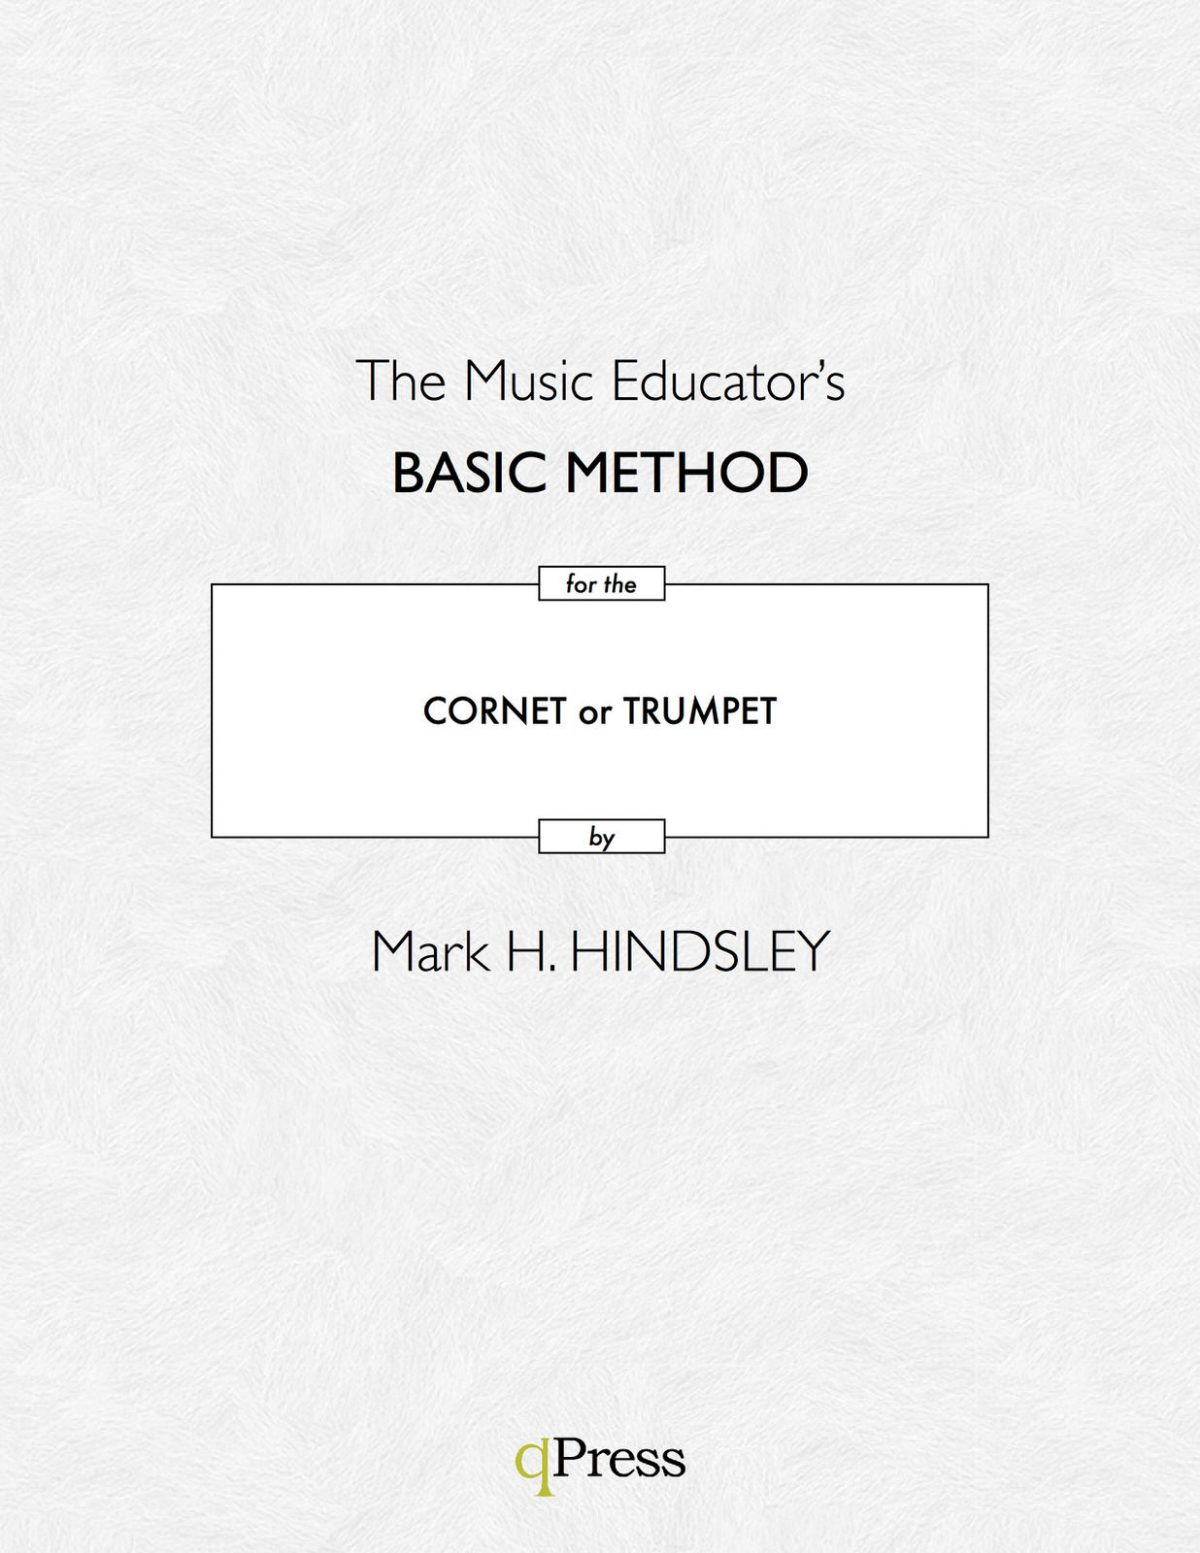 Hindsley, Mark H, The Music Educator's Basic Method for the Trumpet